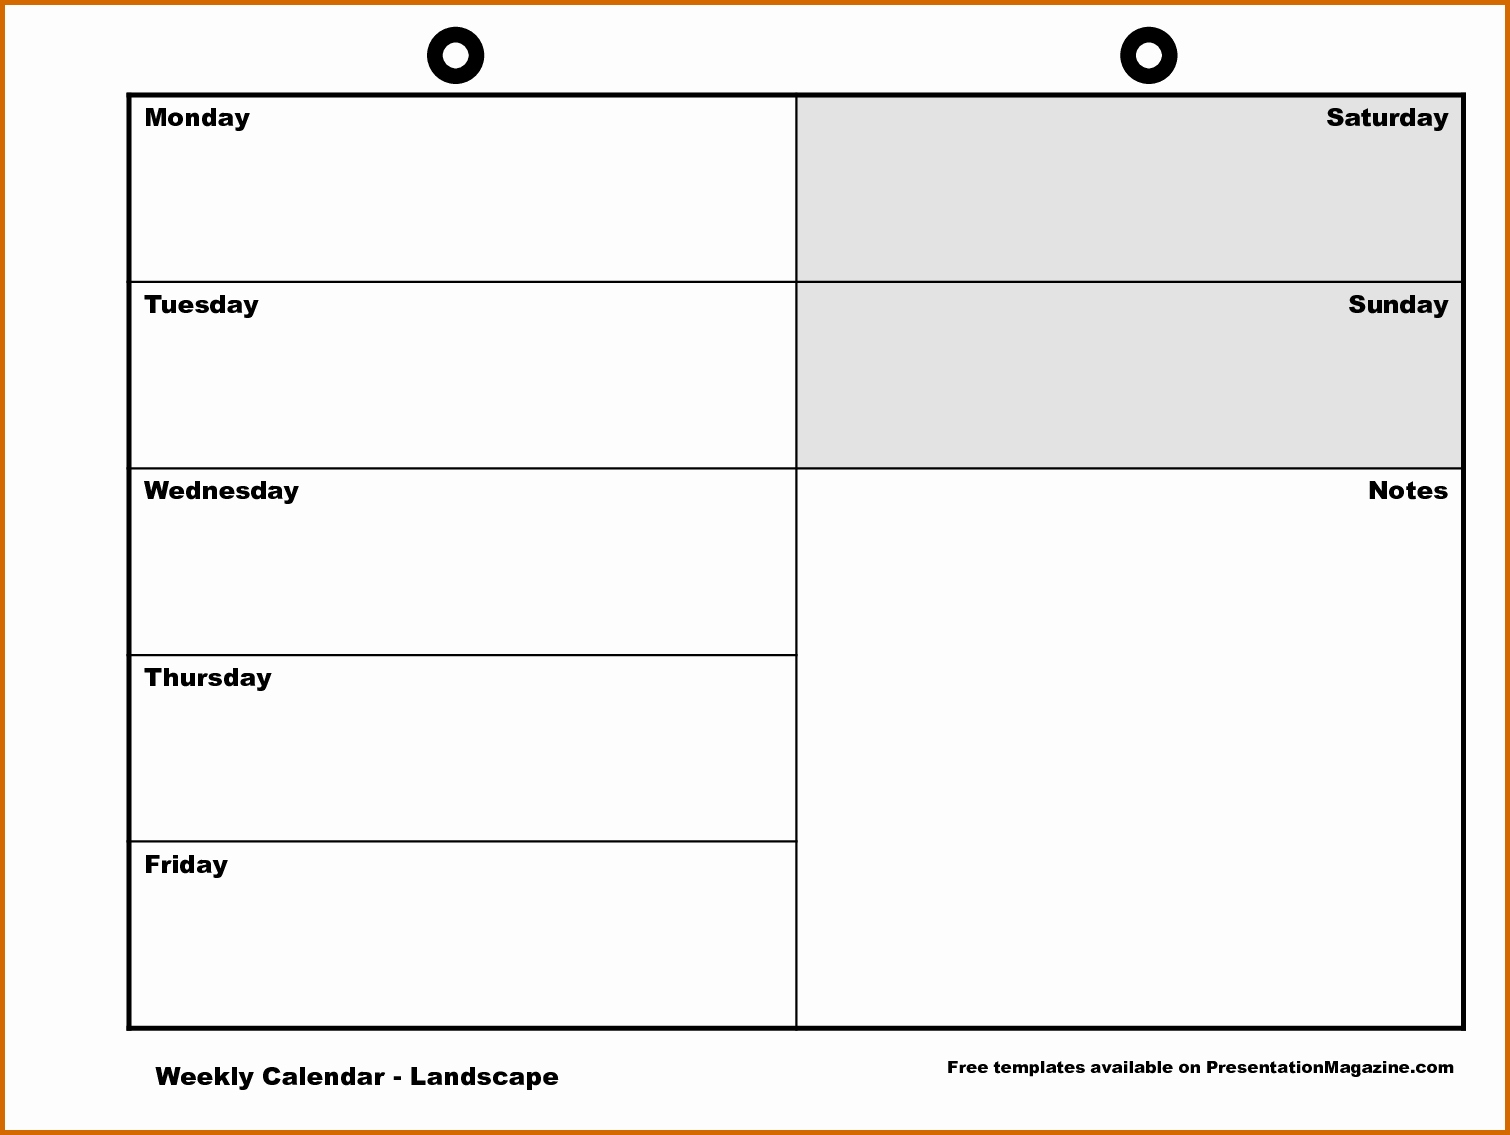 Weekly Schedule Template Printable | Cranfordchronicles intended for Weekly Schedule Monday Through Friday